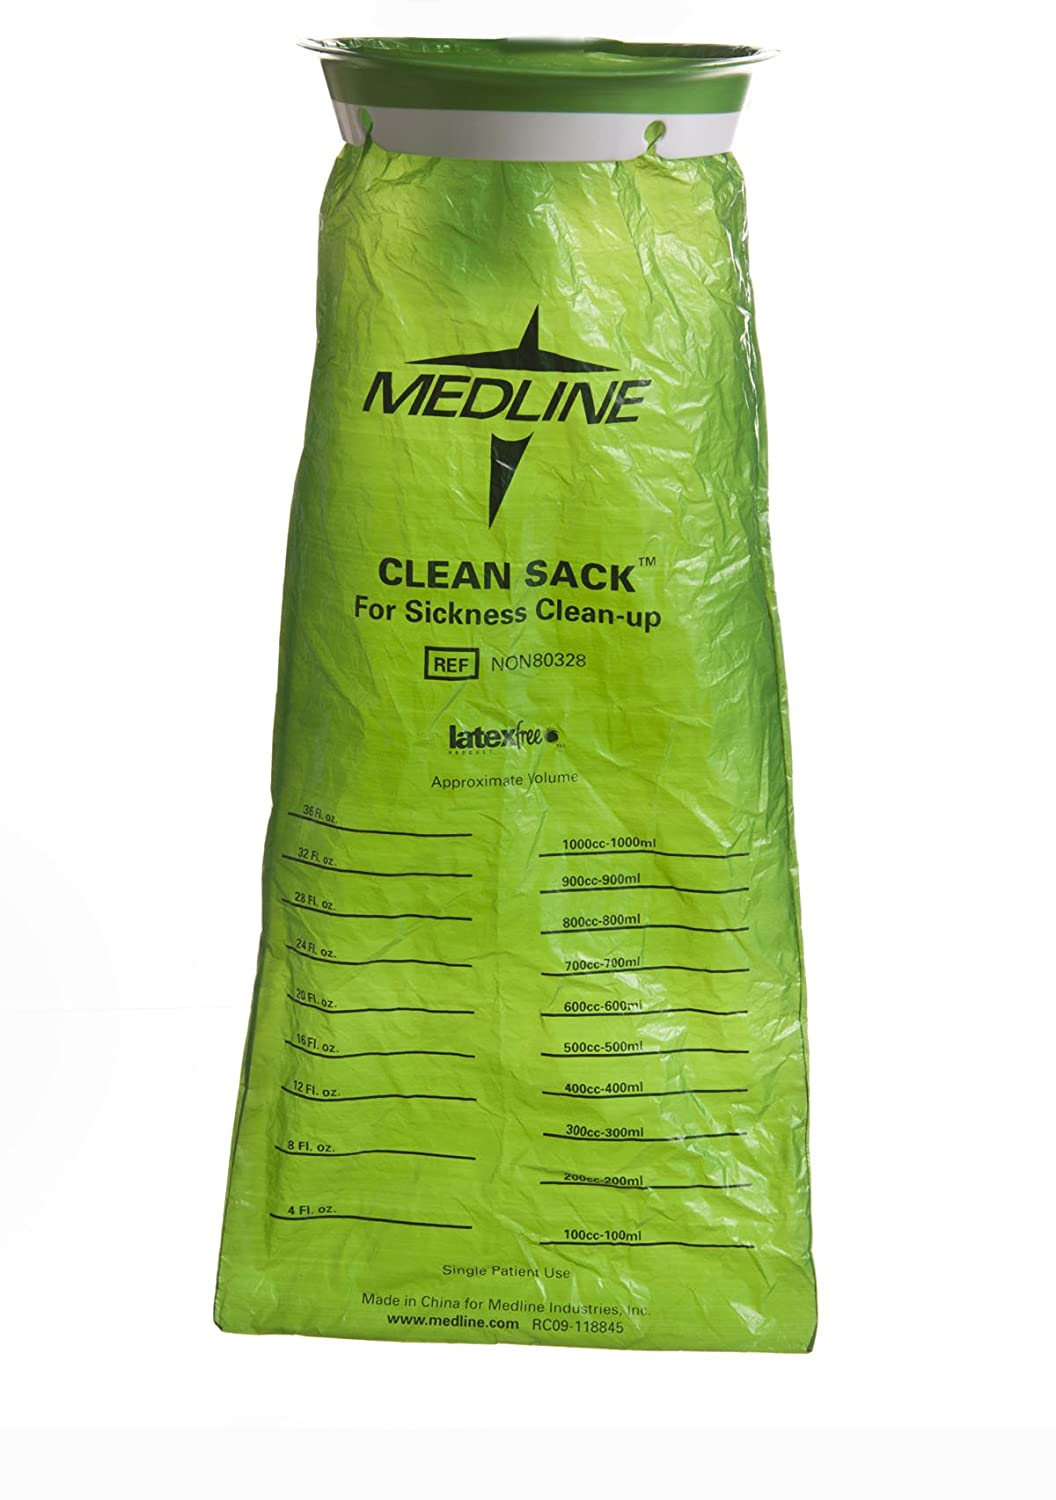 Amazon.com: Medline NON80329 Hi-Density Latex Free Emesis Bags (Pack of 144): Health & Personal Care